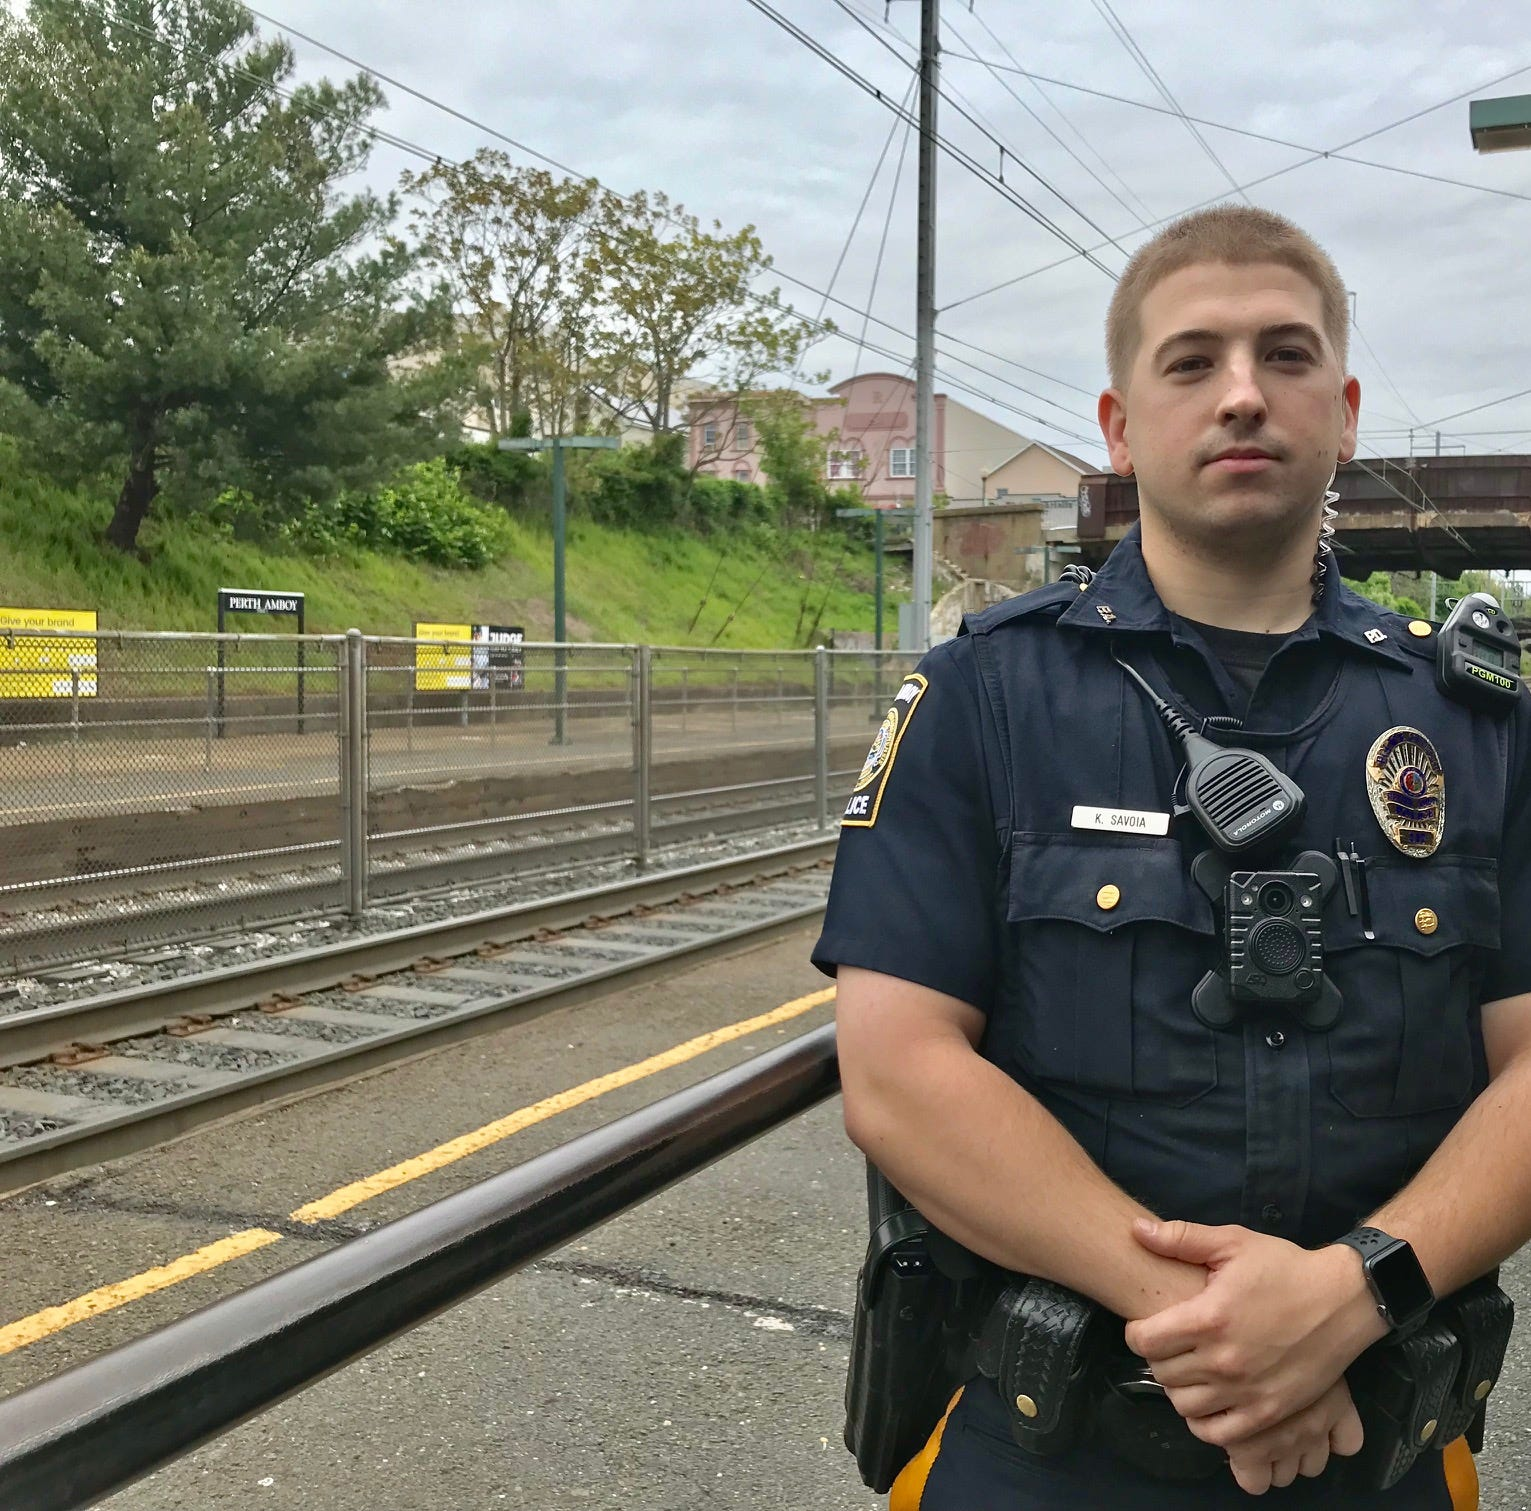 Perth Amboy police officer to be honored for rescuing sleeping man from train tracks